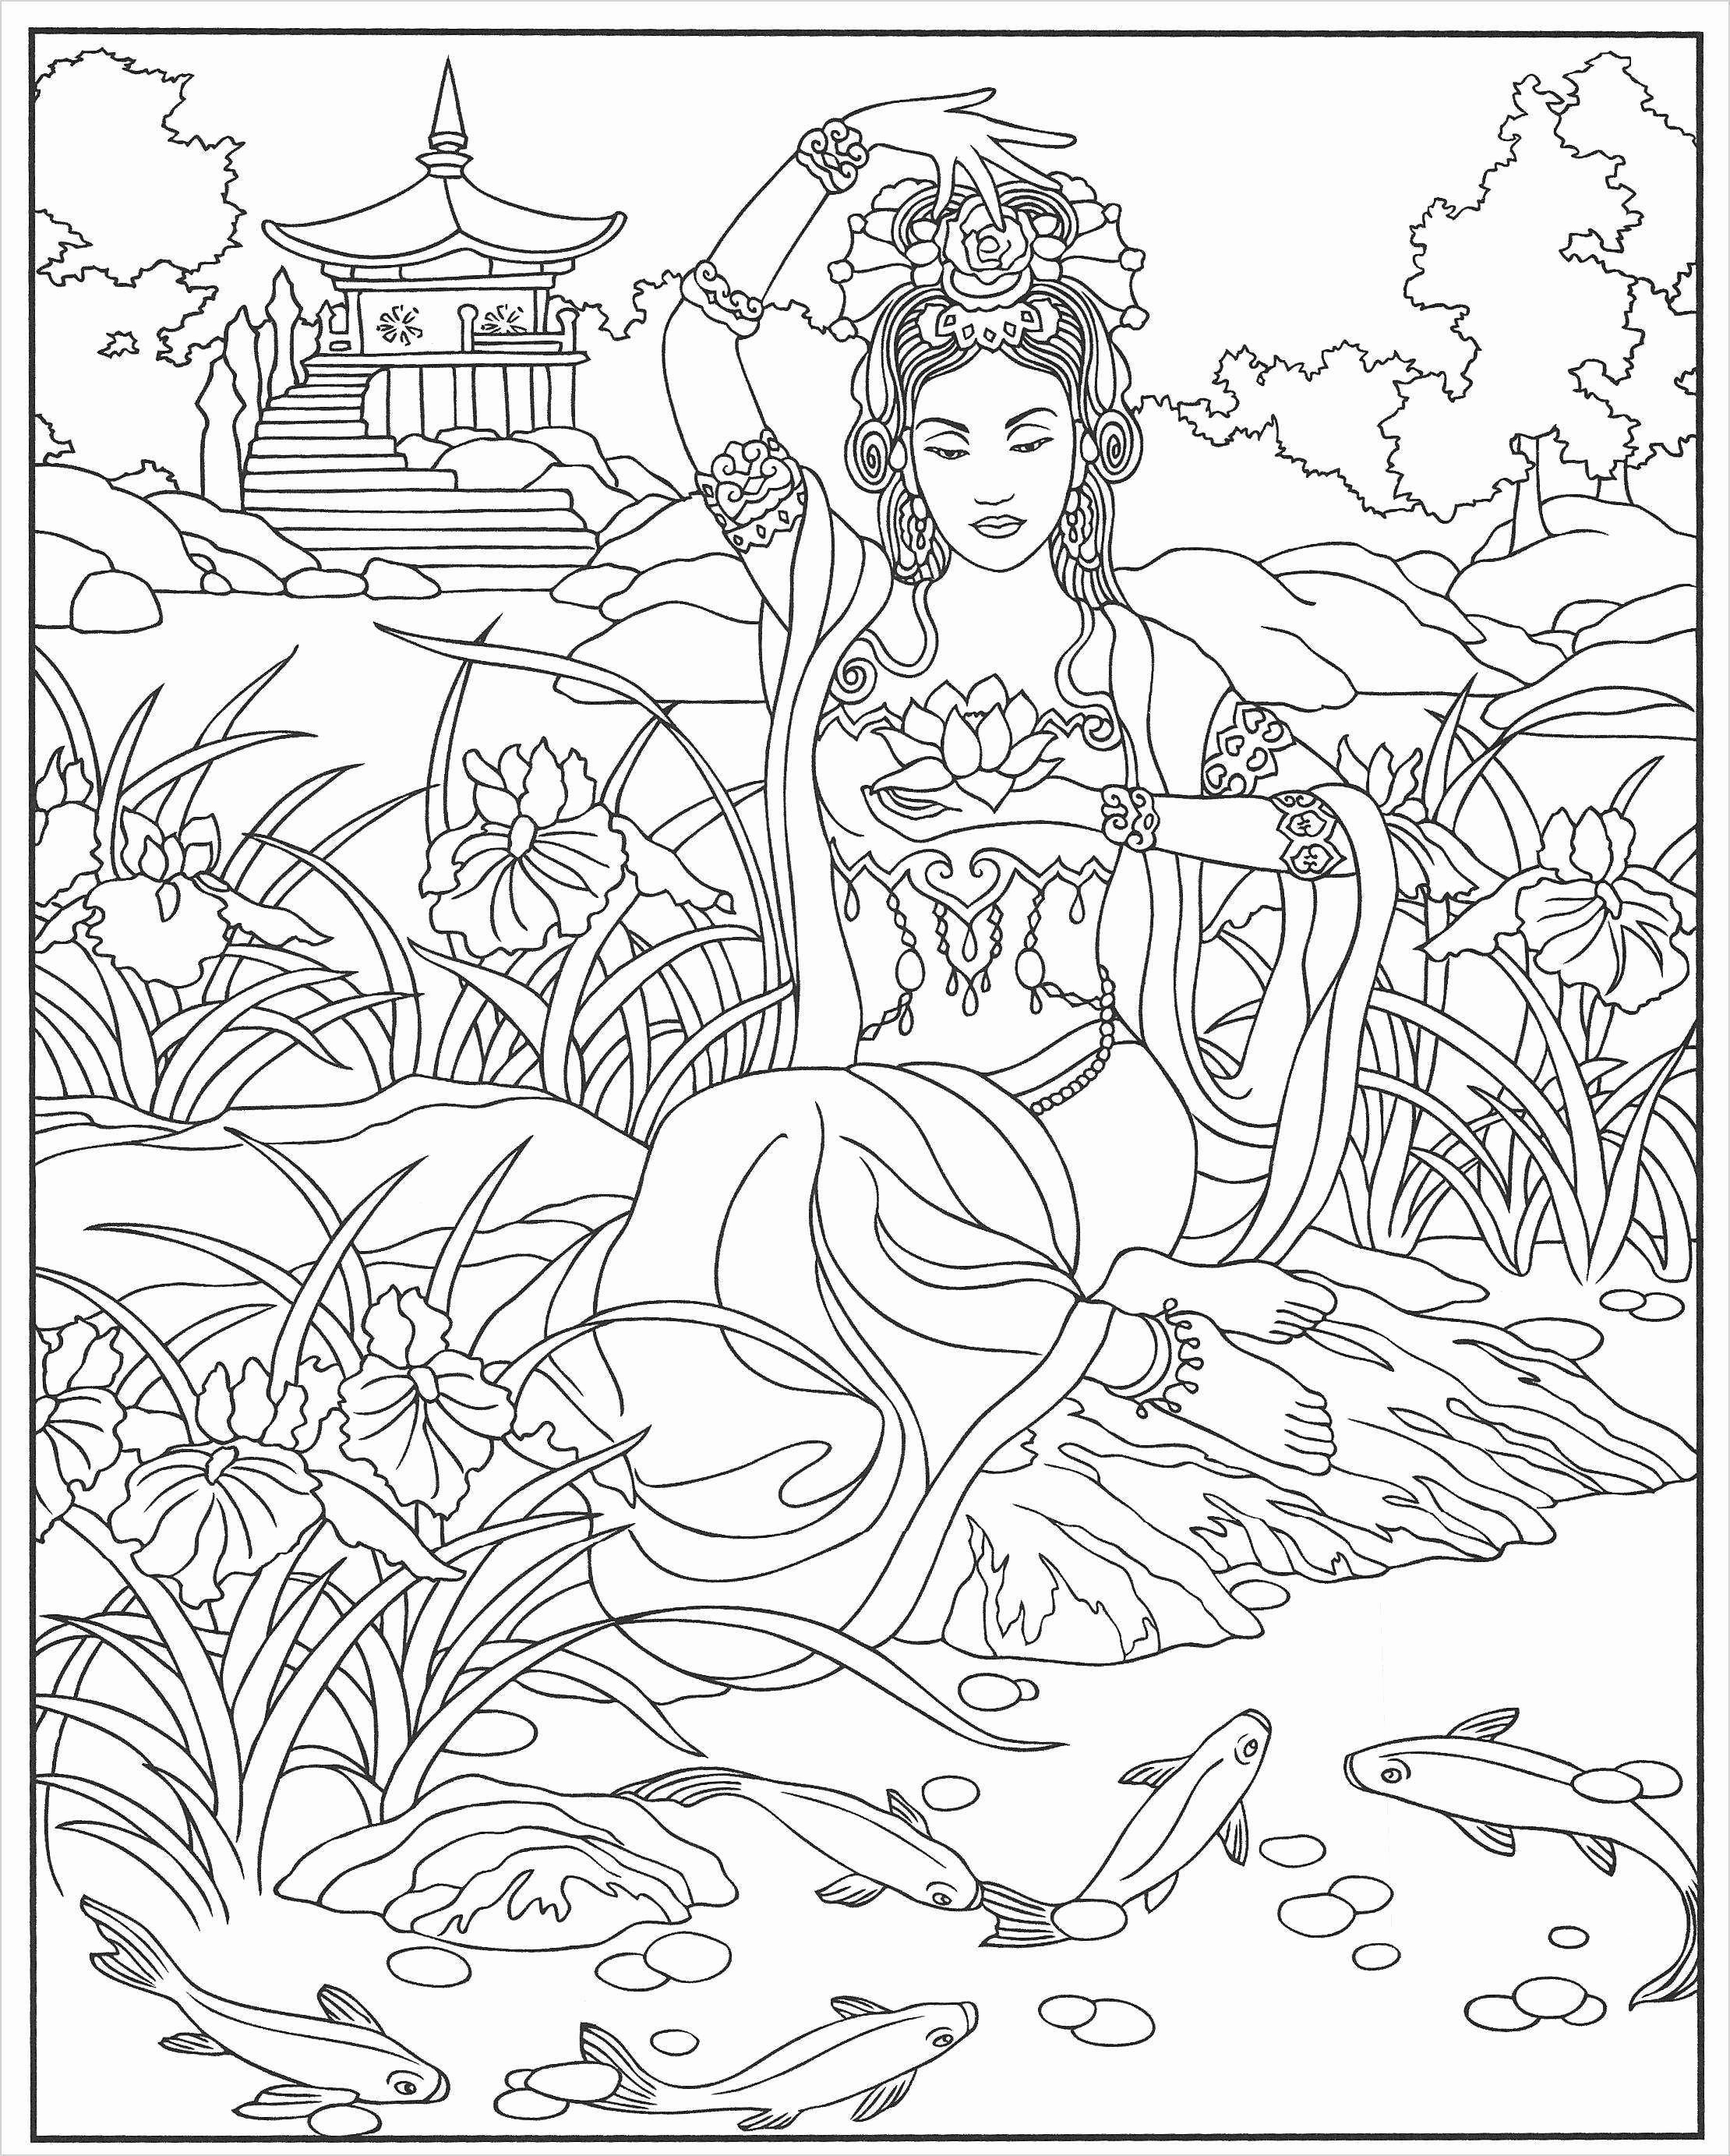 Happy Birthday Coloring Pages For Friends Happy Birthday Coloring Pages Inspirational Happy Birthday Coloring